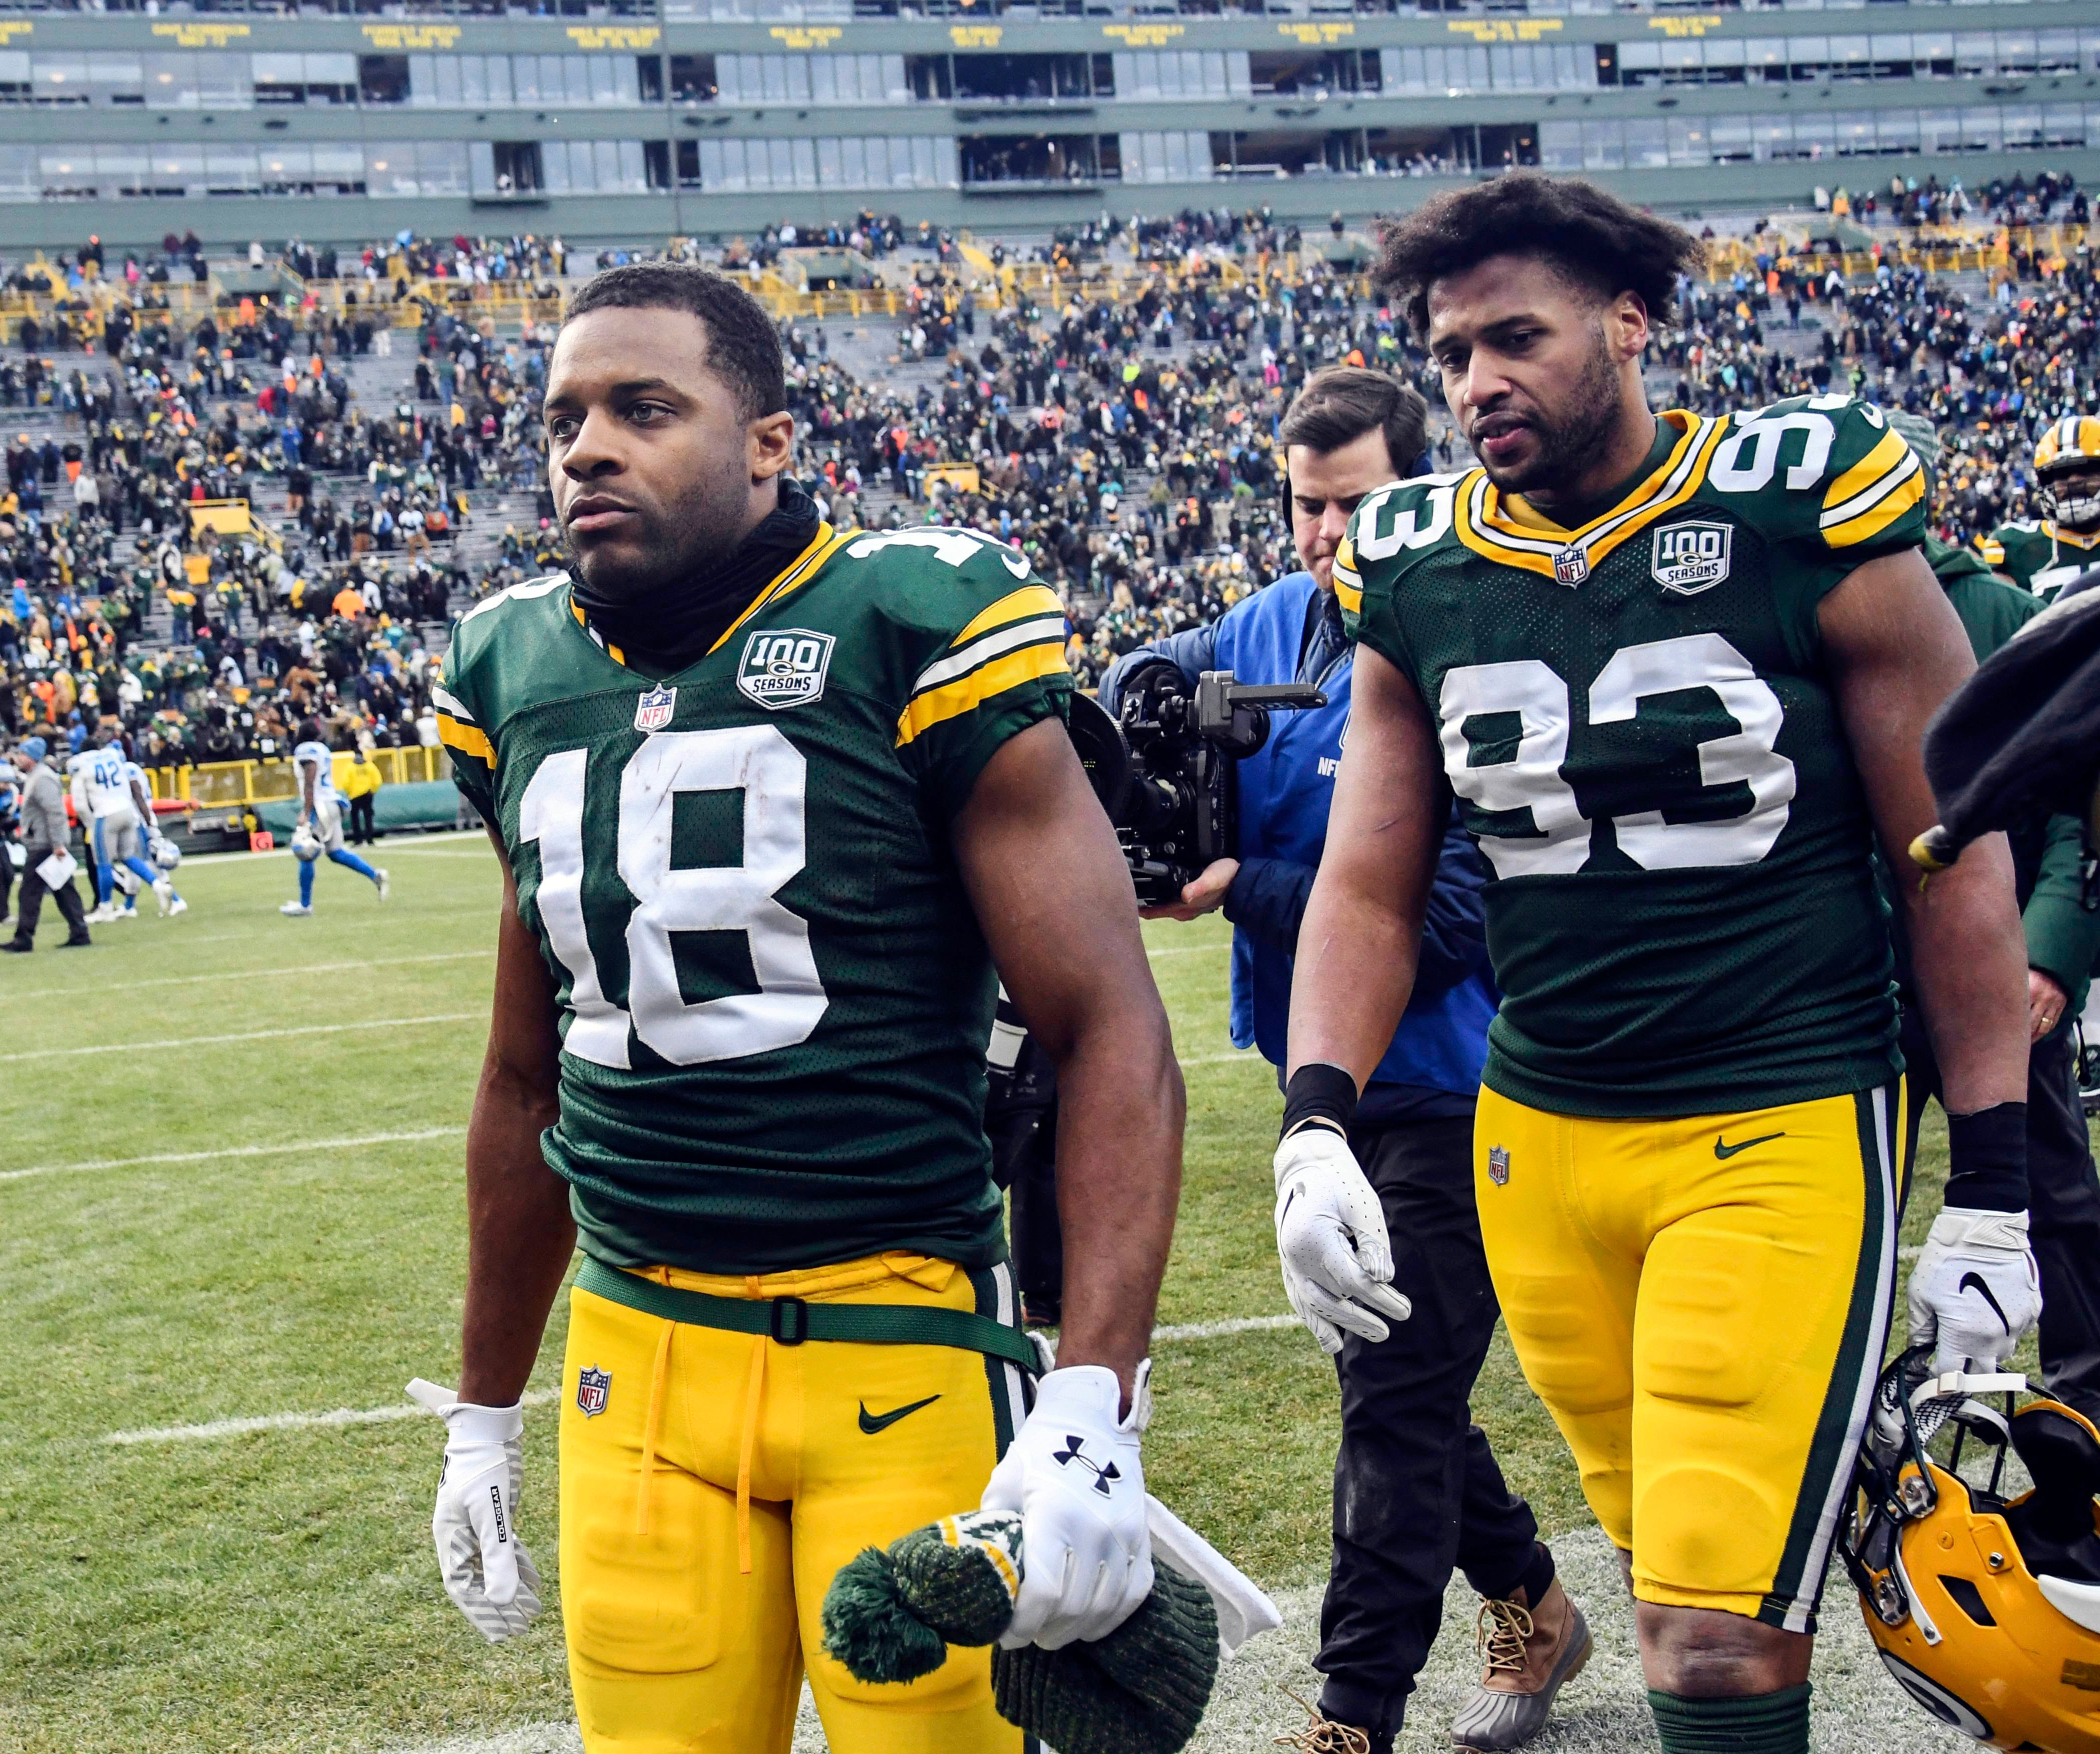 Seven Key Takeaways from the Packers 31-0 Loss to the Lions